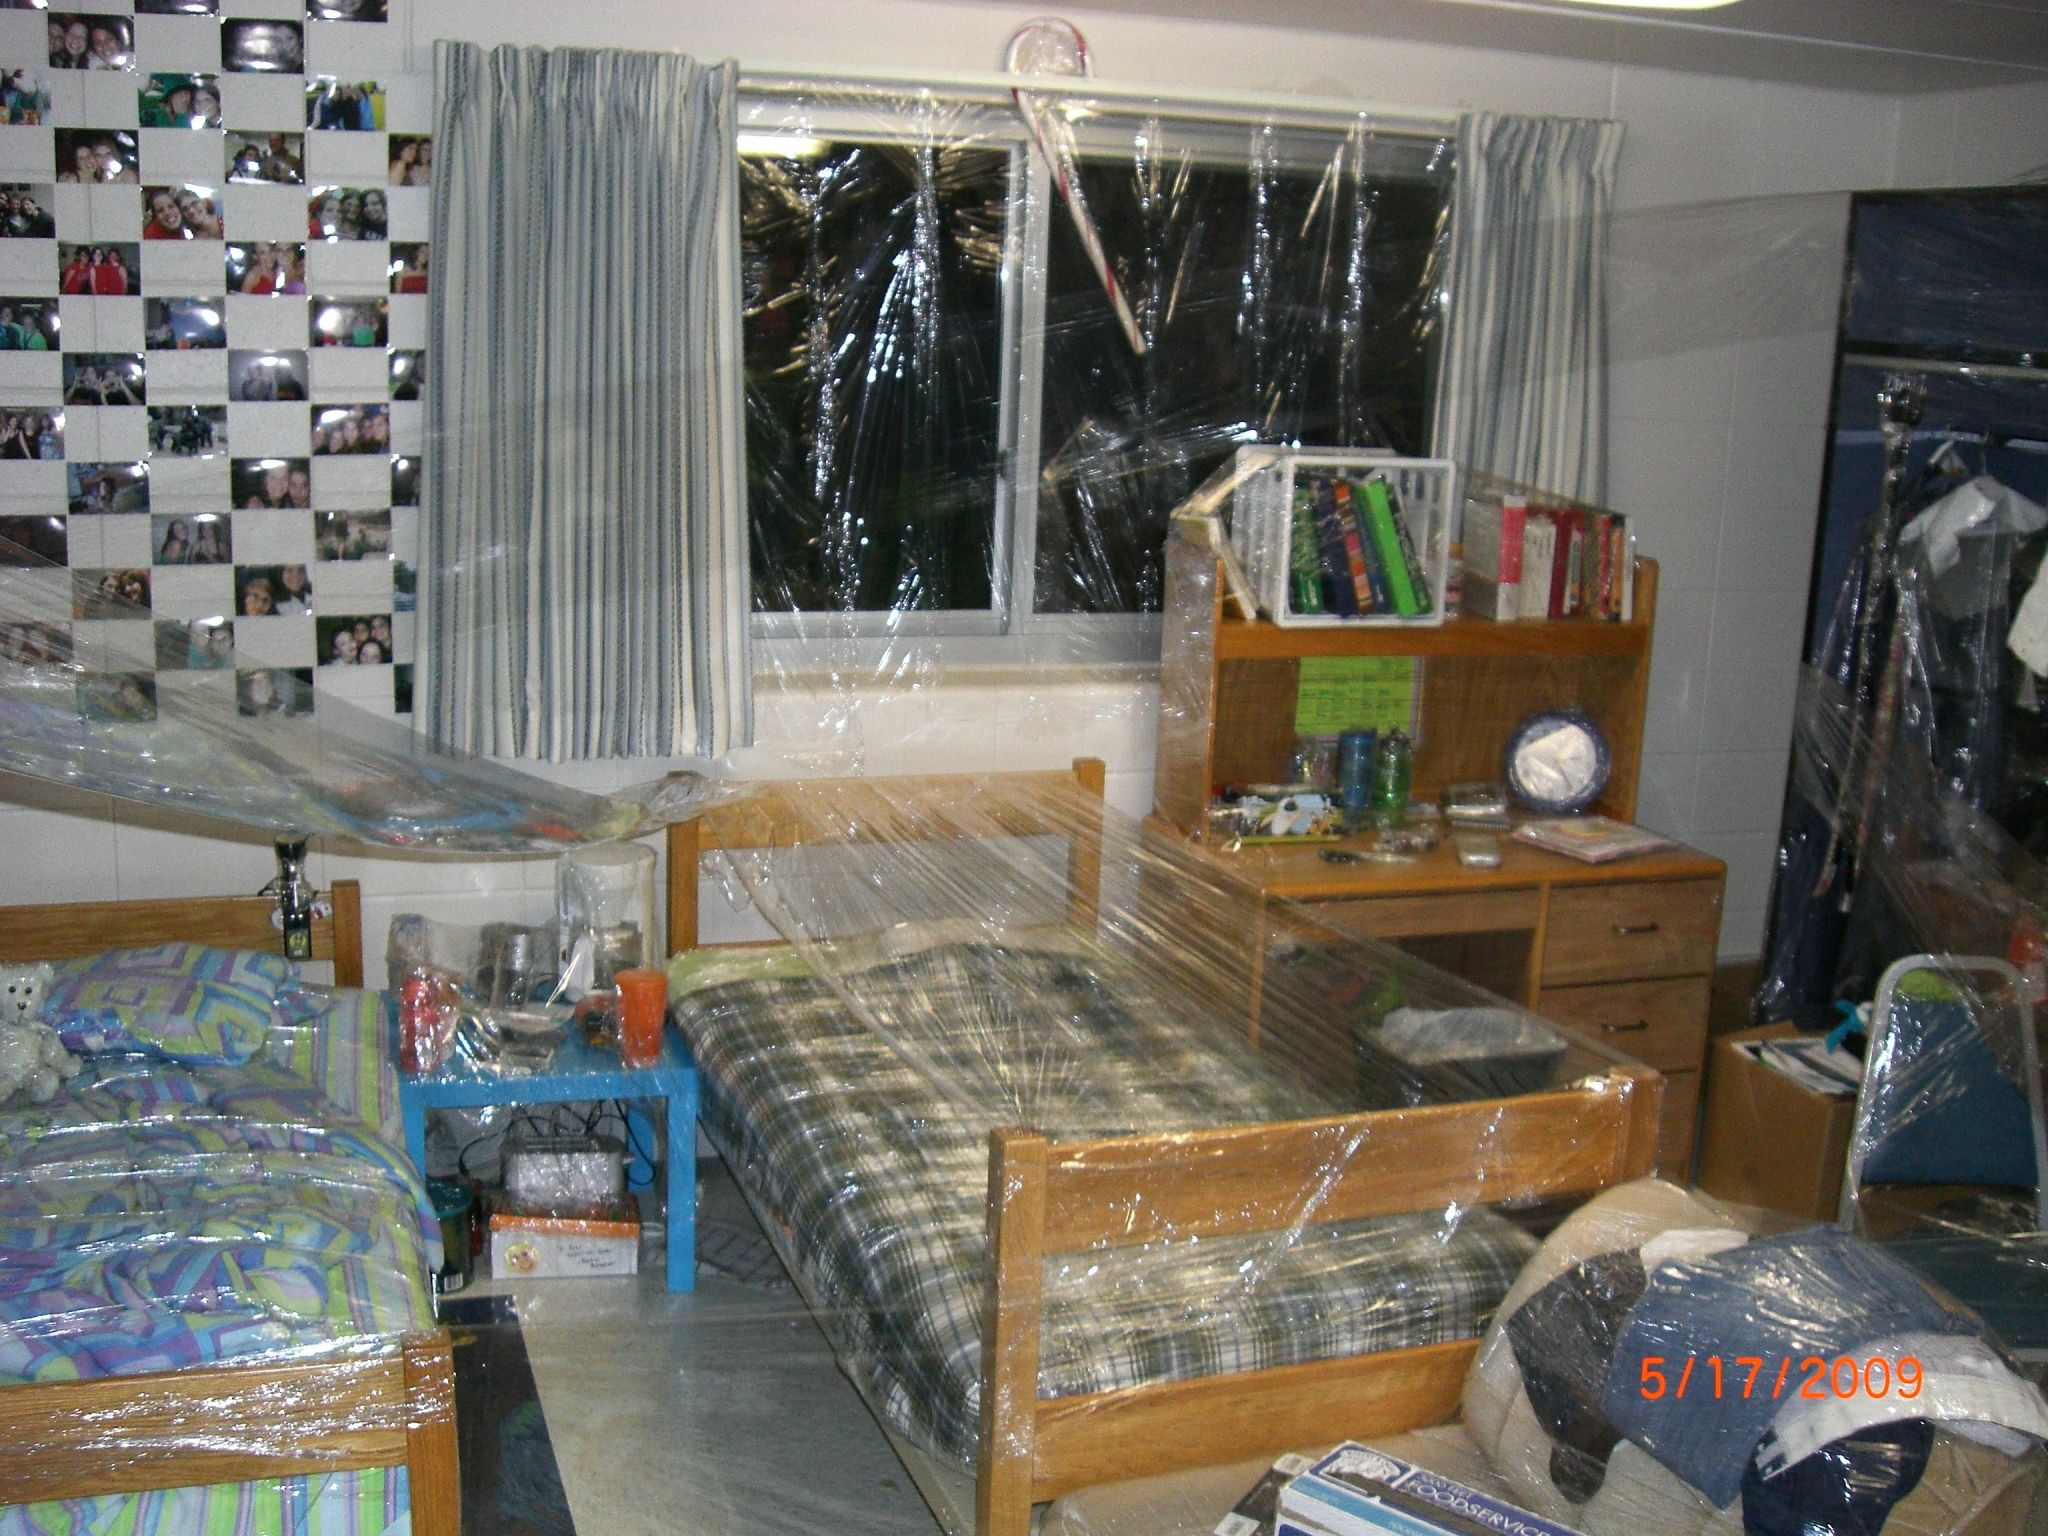 greatest prank to do on your friends room plastic wrap everything in their room